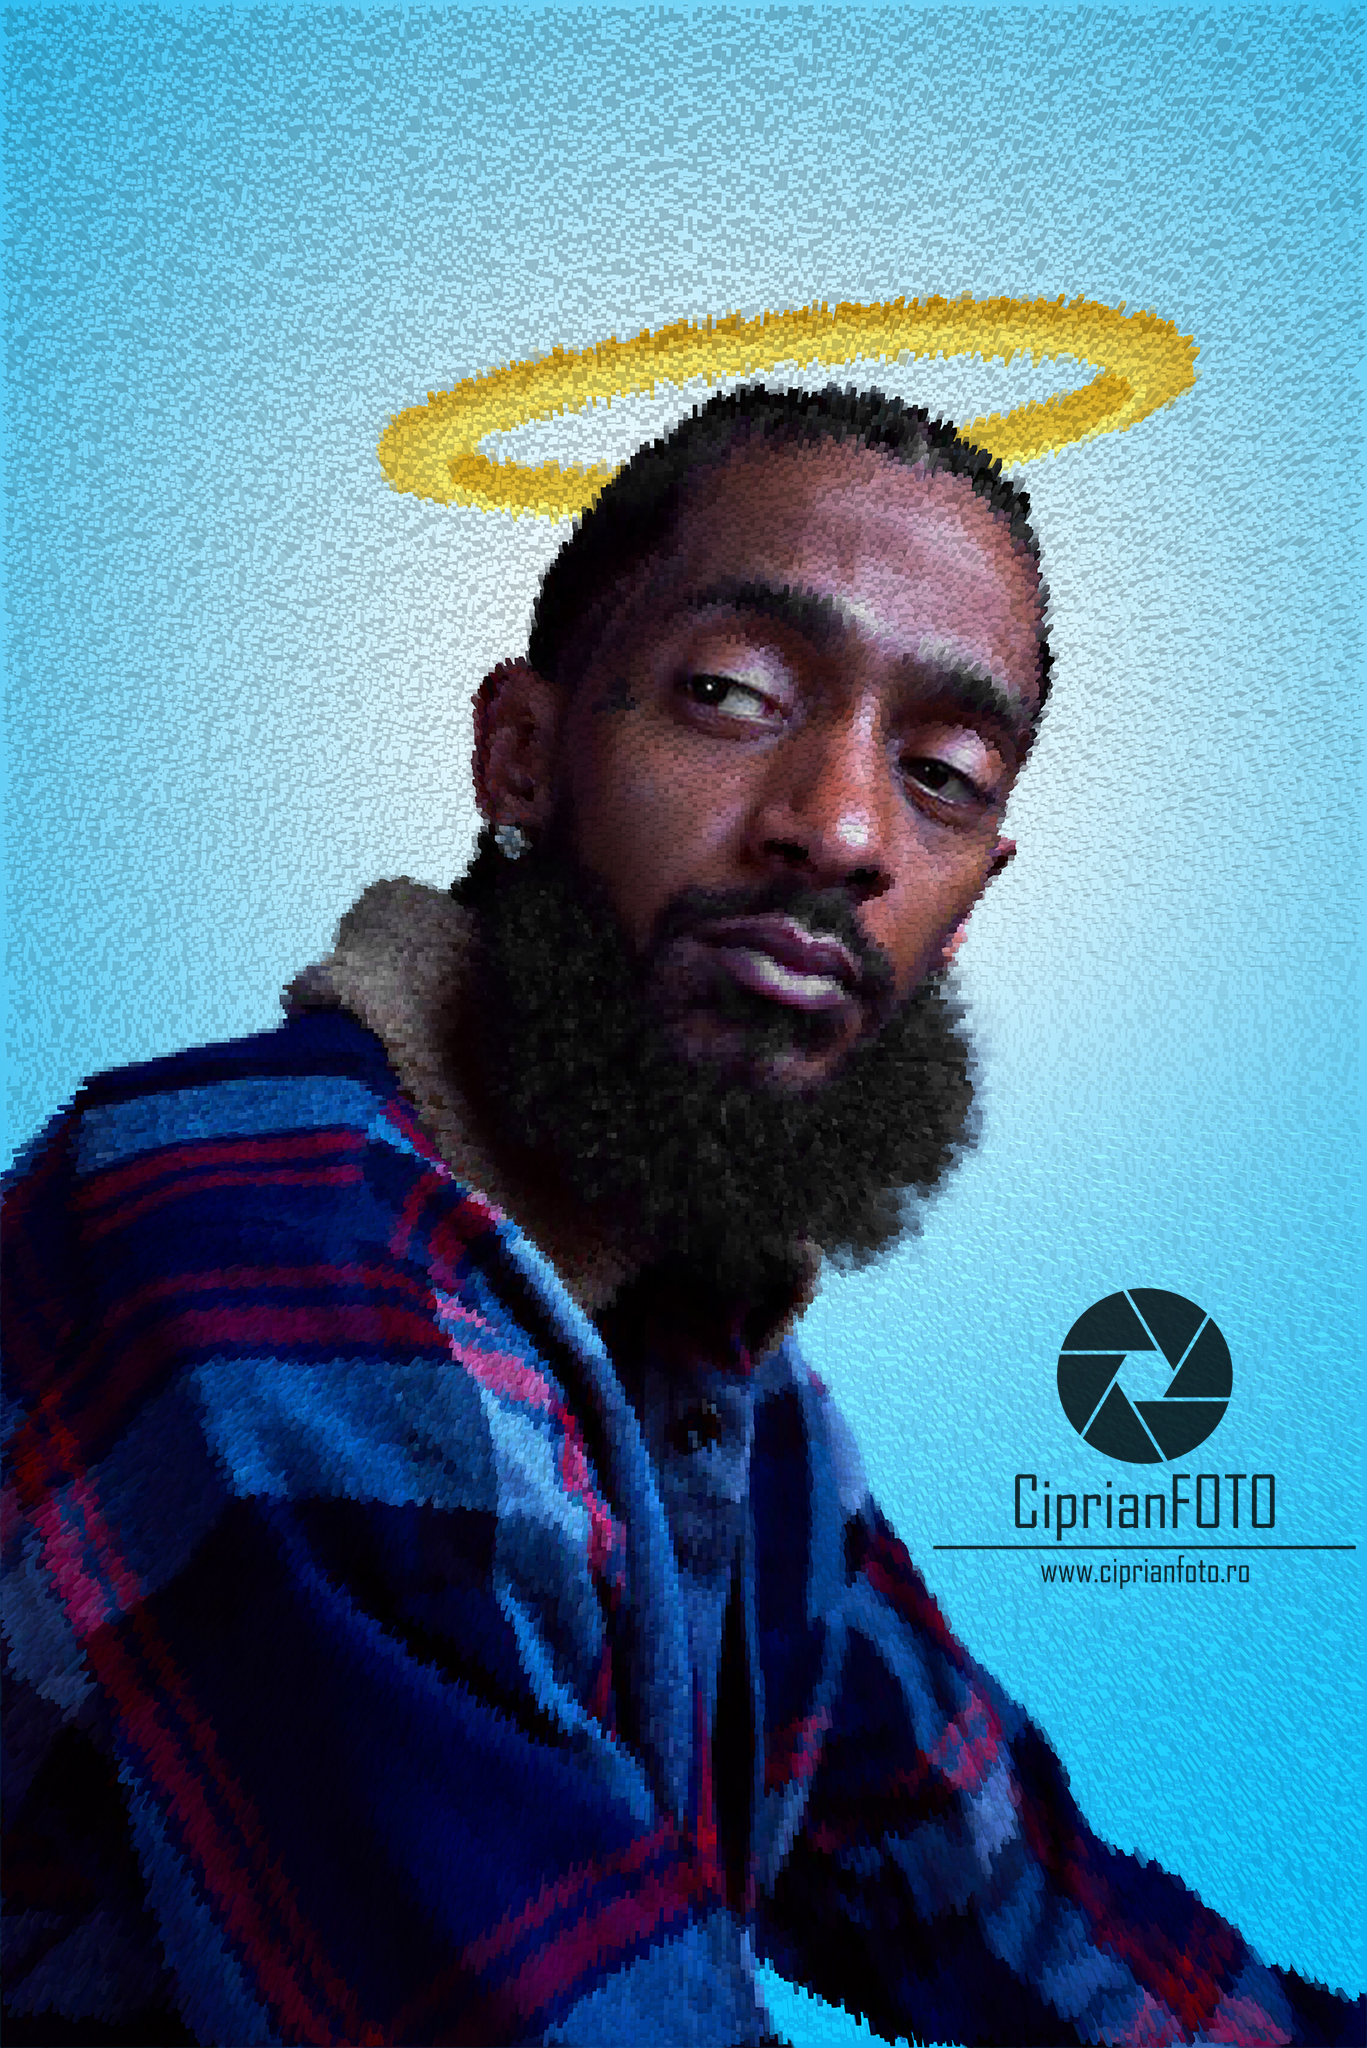 Nipsey Hussle, Fan Art Tribute, Photoshop Tutorial, CiprianFOTO